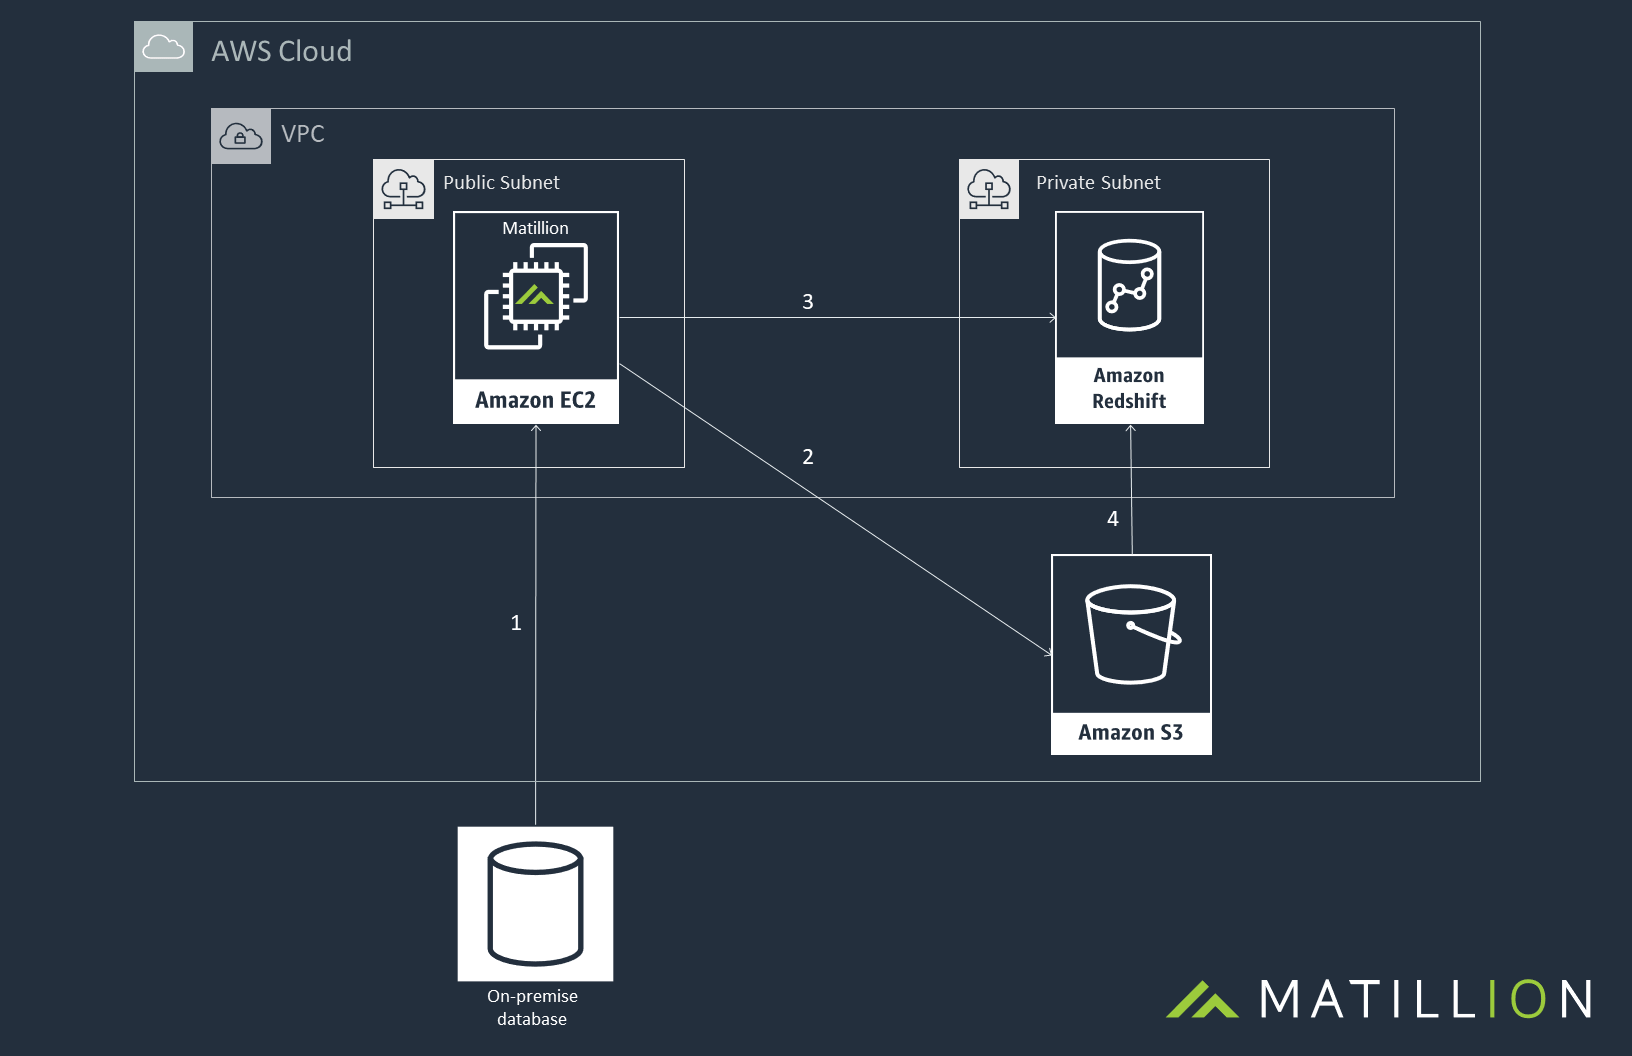 Matillion AWS Architecture Diagram - General